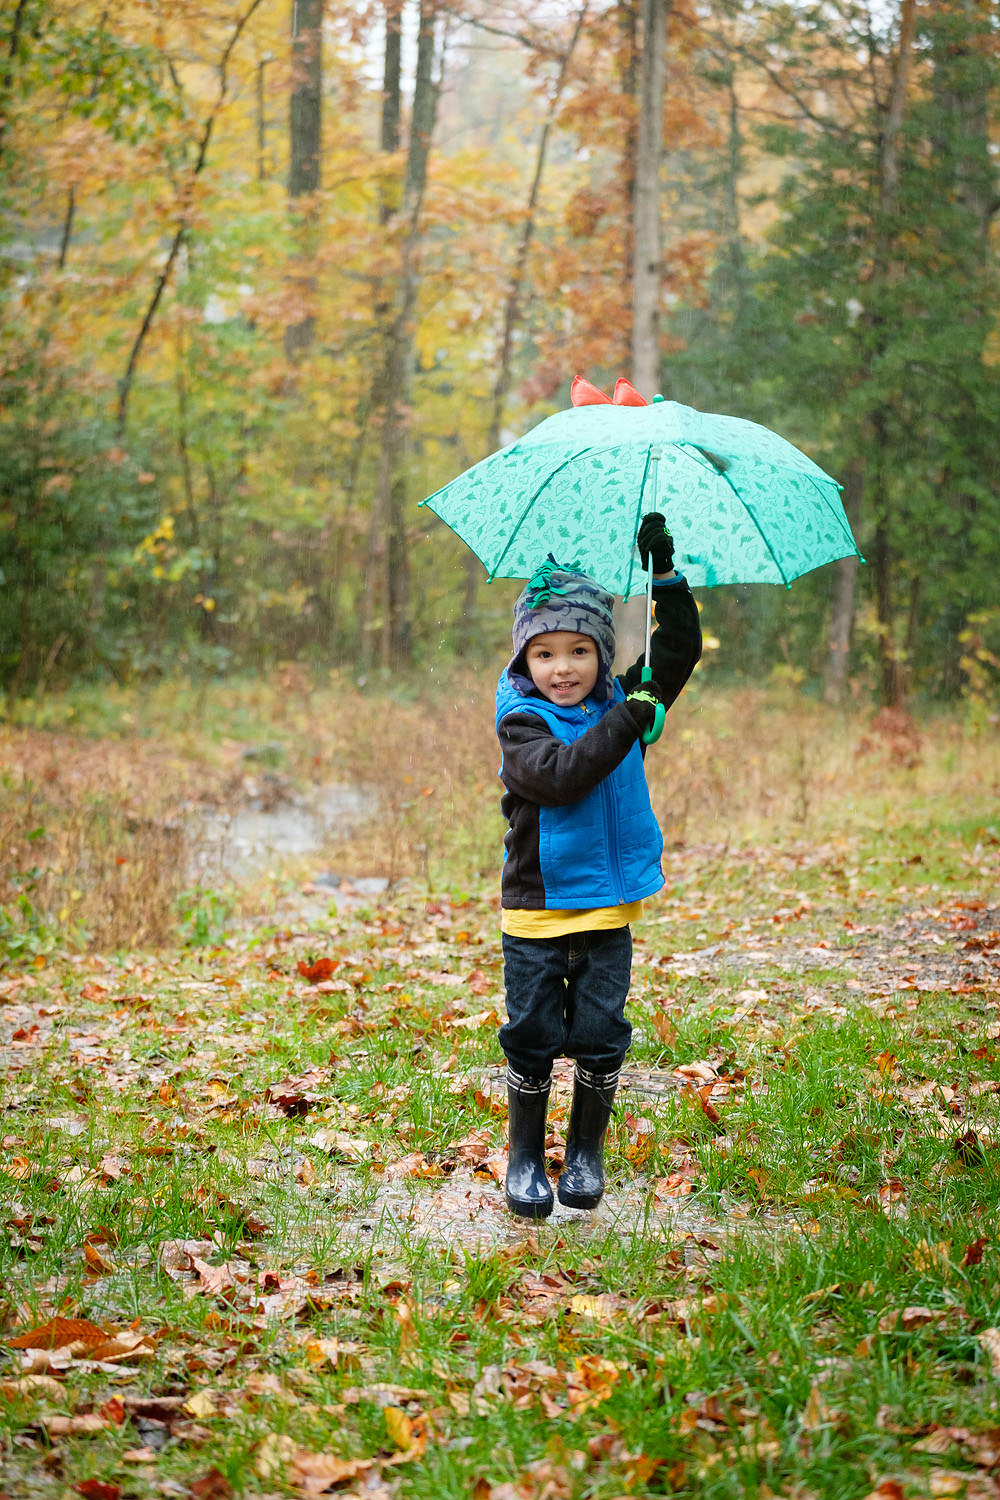 Boy with umbrella playing in the rain